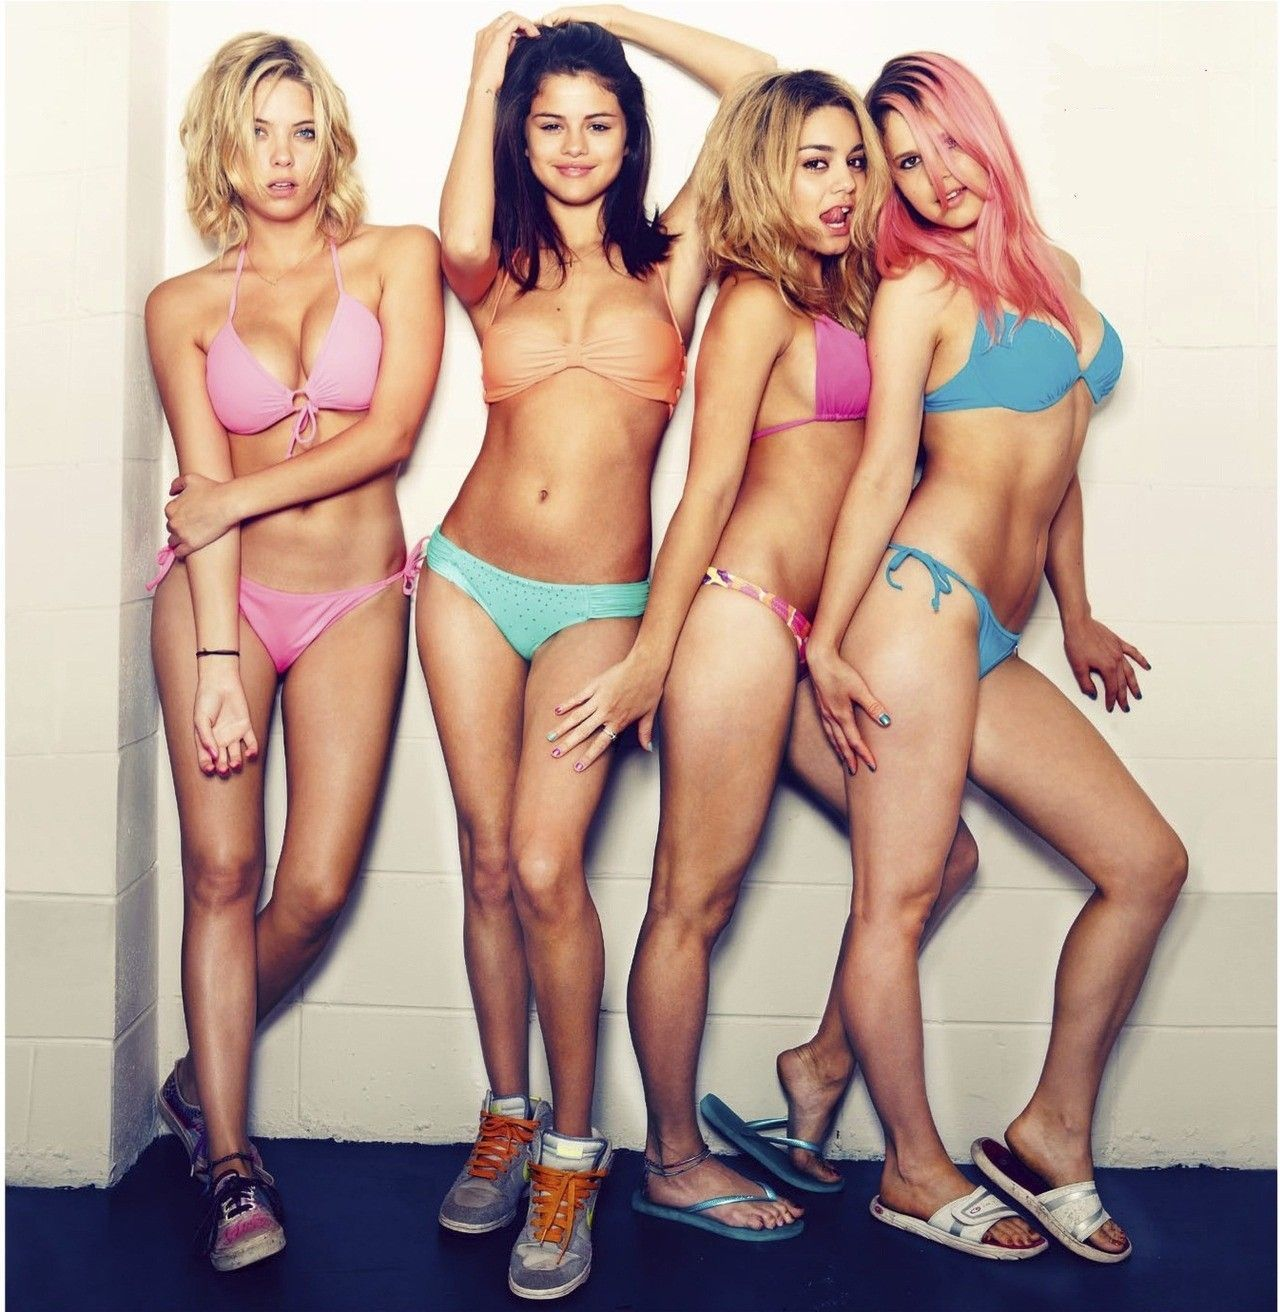 Spring breakers photocall venice film festiva vanessa hudgens selena gomez ashley benson james franco